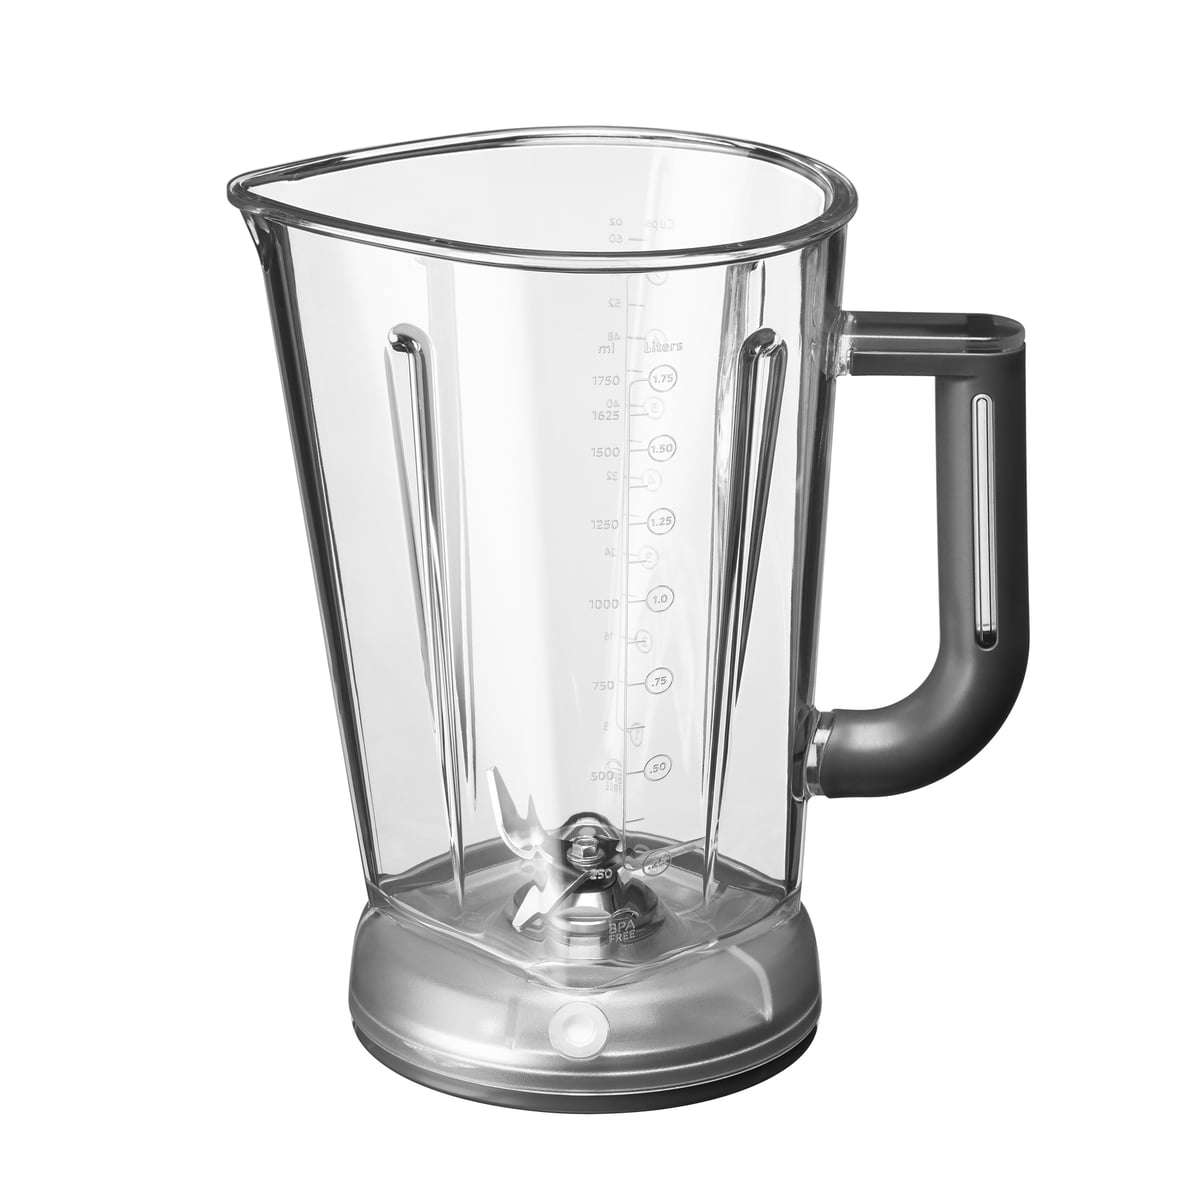 Kitchenaid Blender artisan magnetic drive blenderkitchenaid